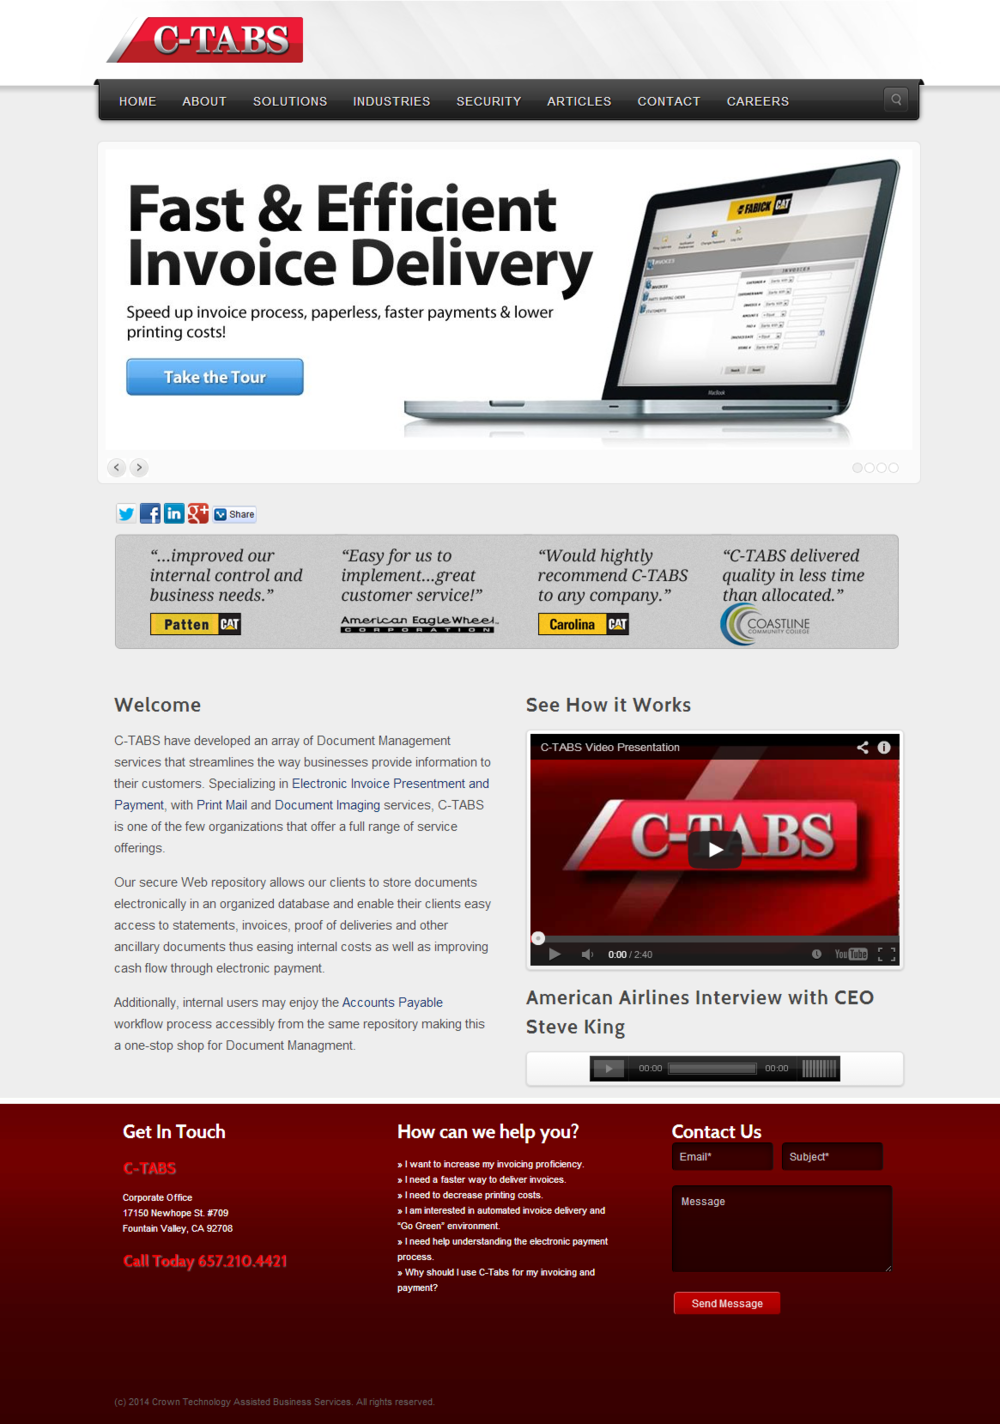 Crown Technology Assisted Business Services   C TABS.png